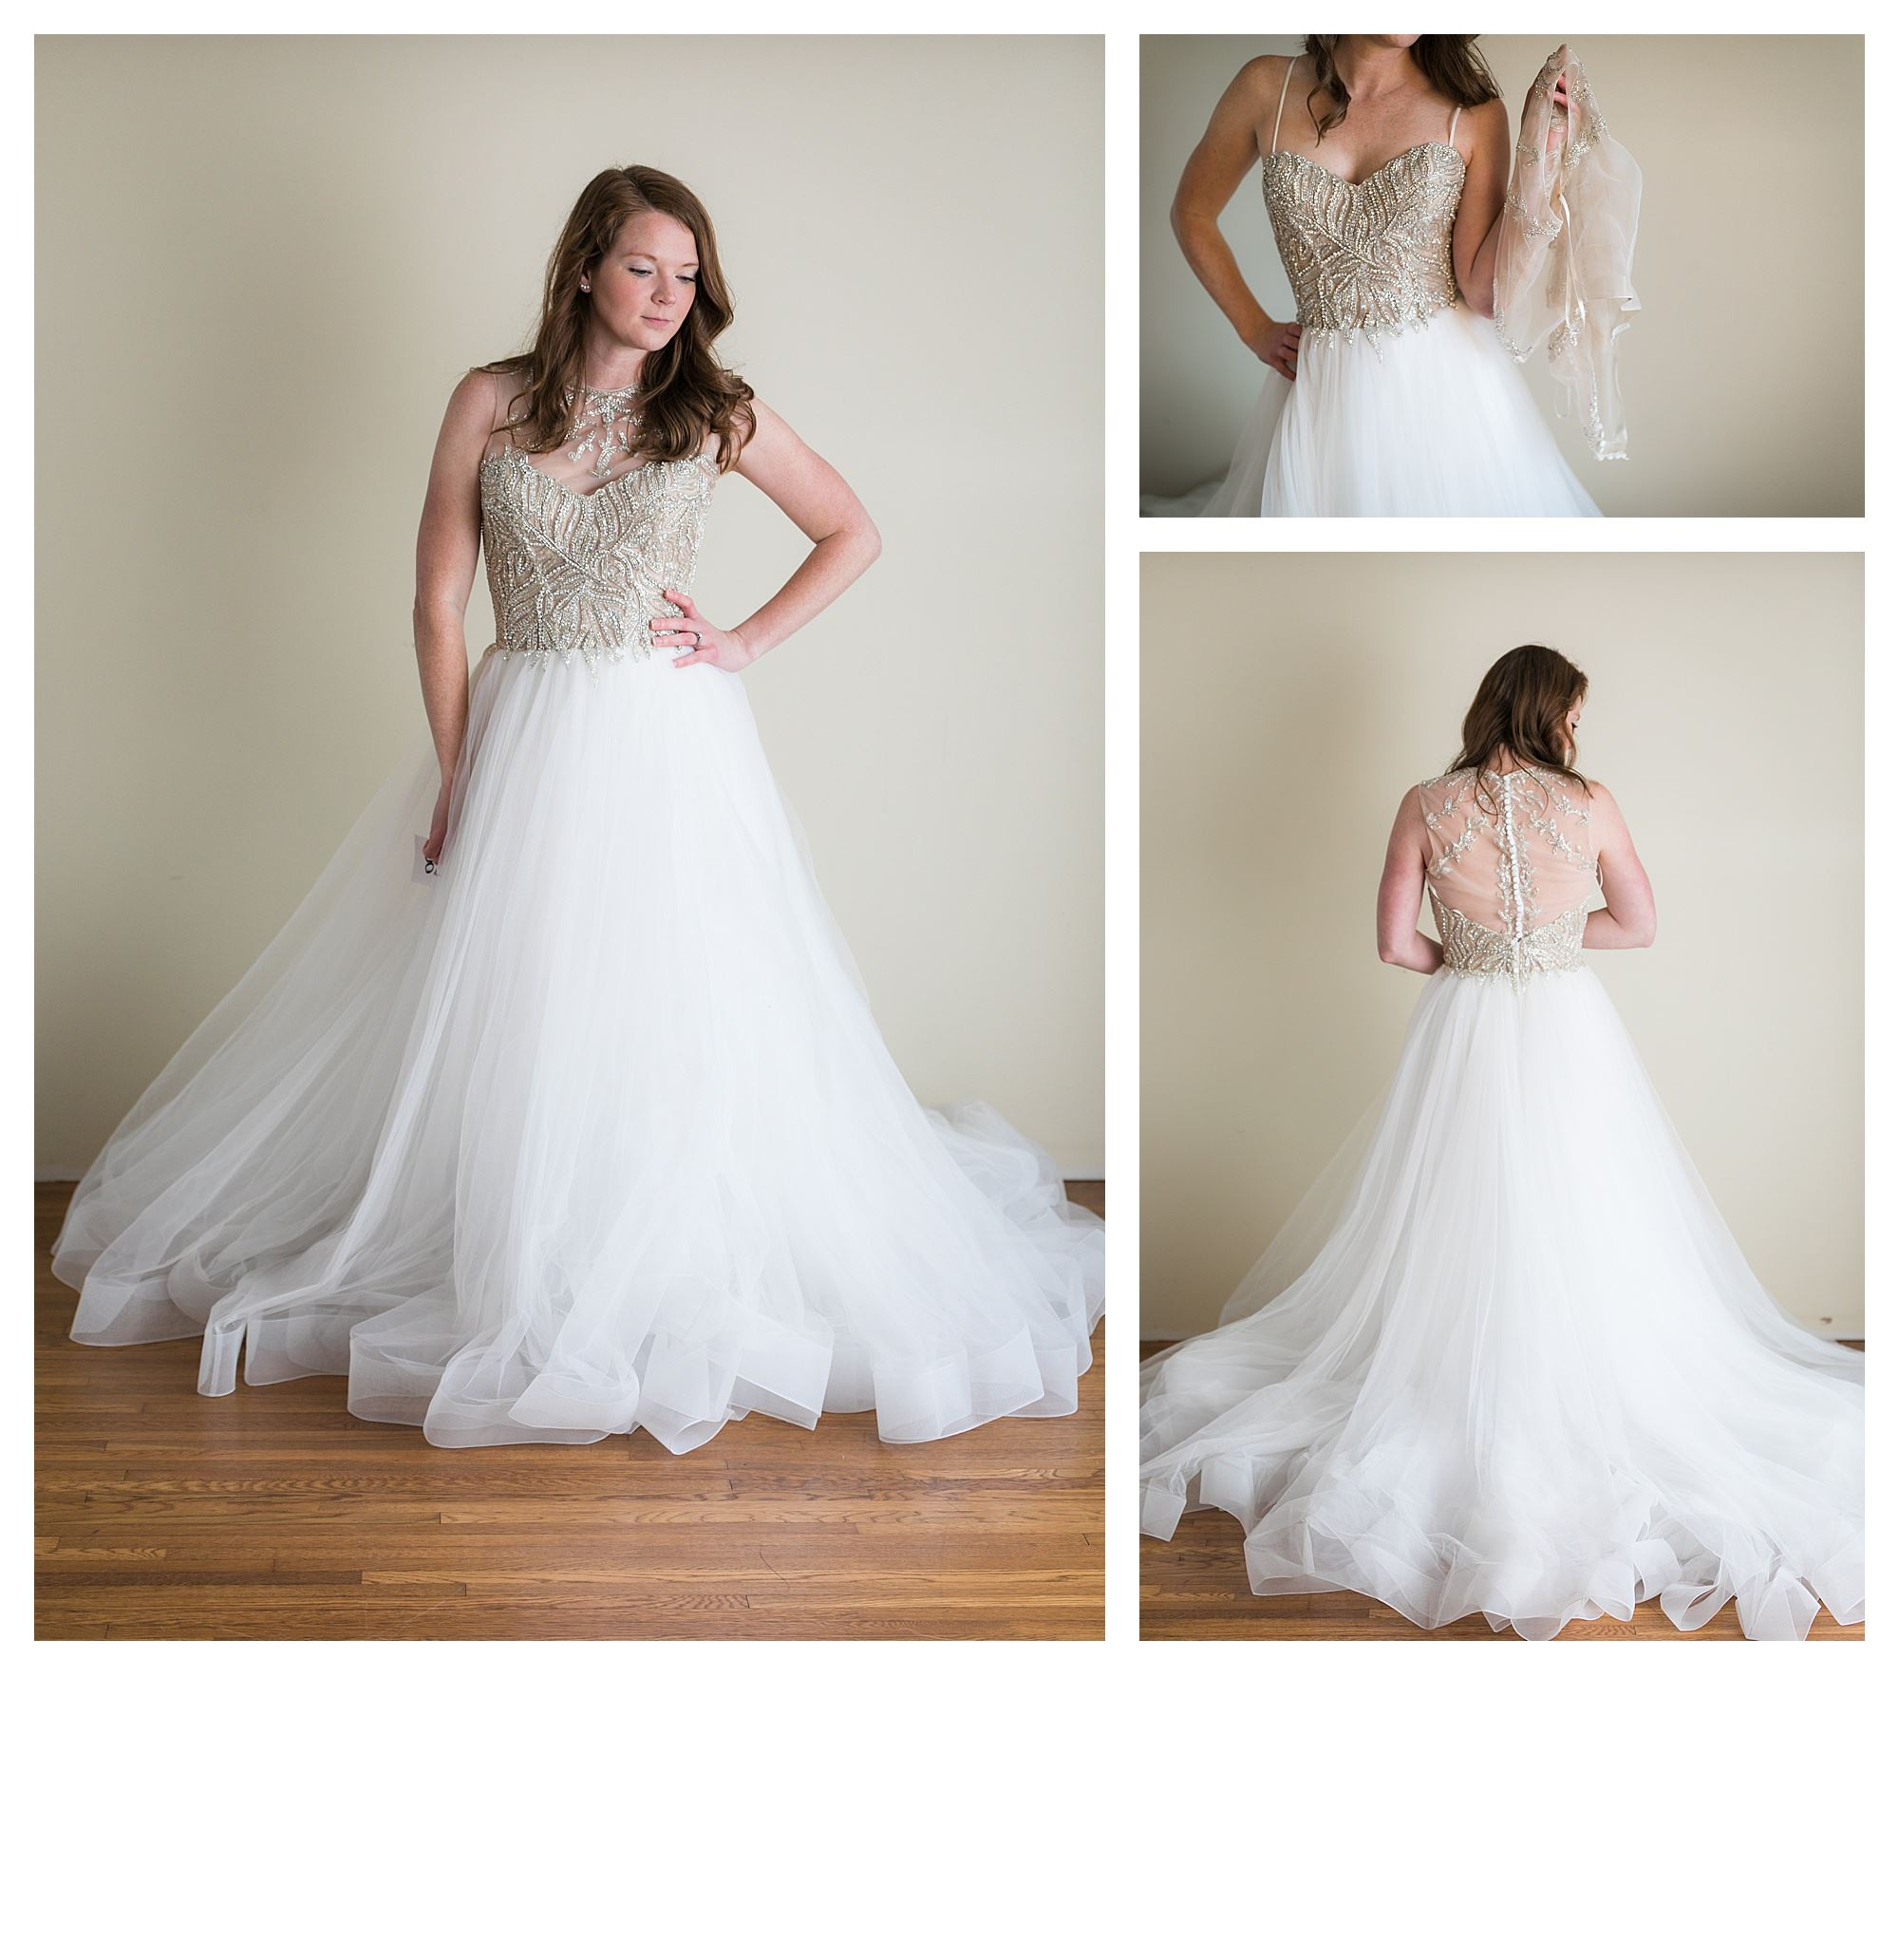 Santina - Size 14 - Ivory/SIlver - Originally priced $1799 - Sample box price $1199